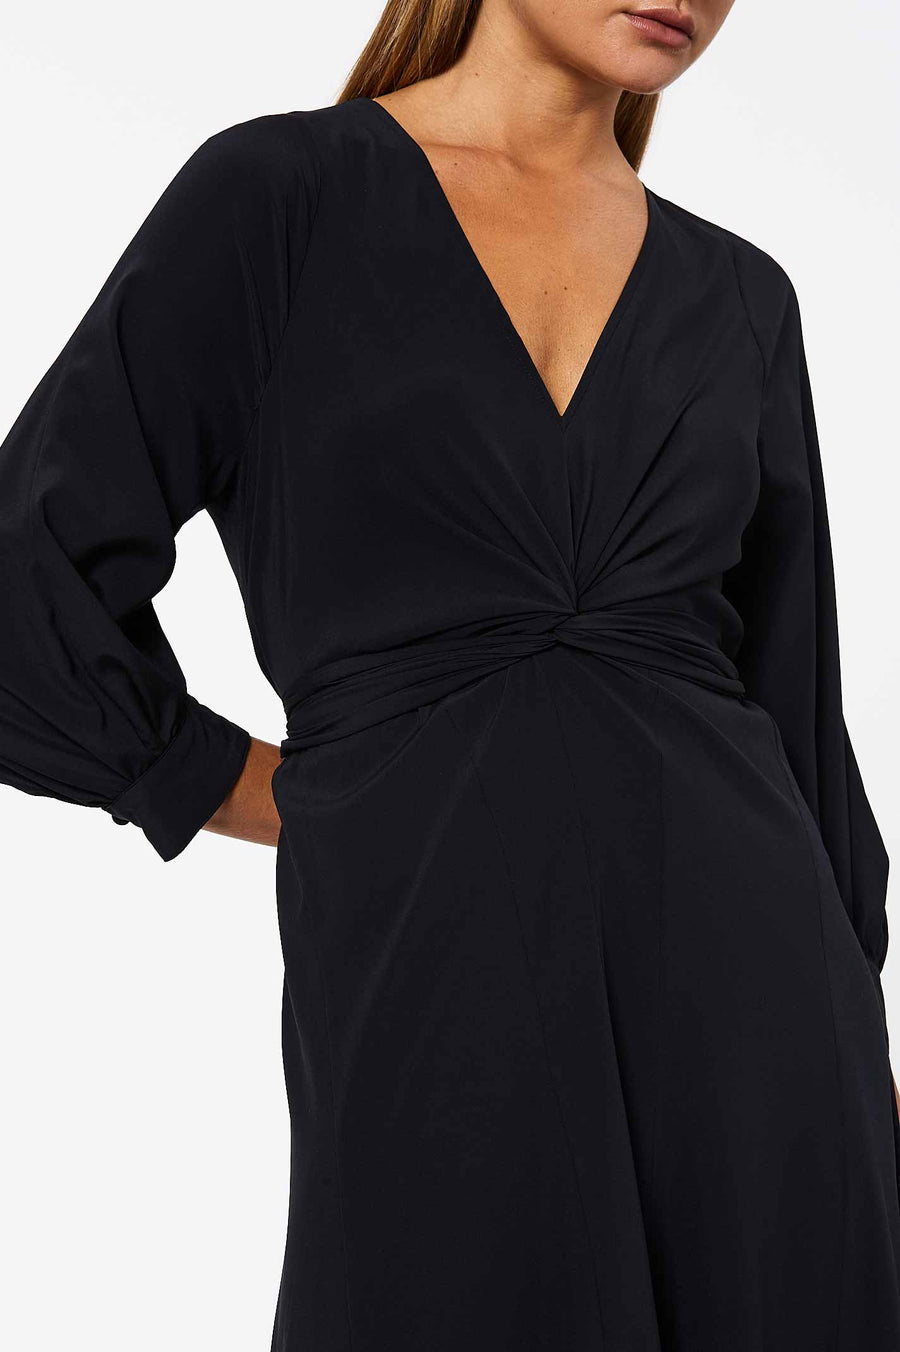 CDC Turban Twist Dress Navy, regular fit, below the knee length, ¾ blouson sleeves, v-neckline.CDC Turban Twist Dress Navy, regular fit, below the knee length, ¾ blouson sleeves, v-neckline.